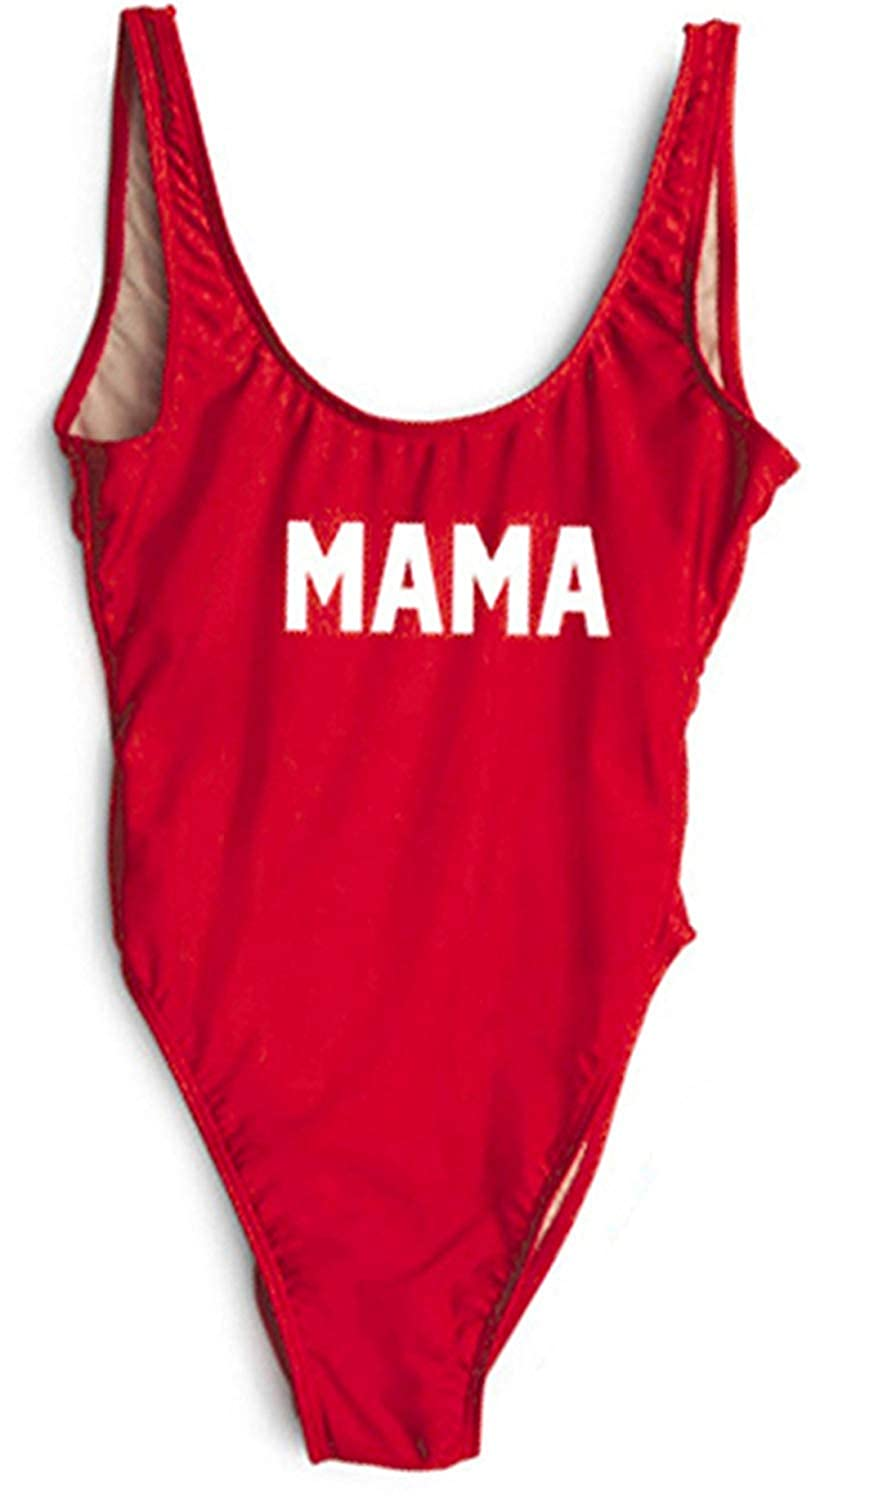 Acircle Mommy and Me Swimsuit Letters Print One Piece Swimsuit Bathing Suit for Mother and Daughter Family Matching Swimwear